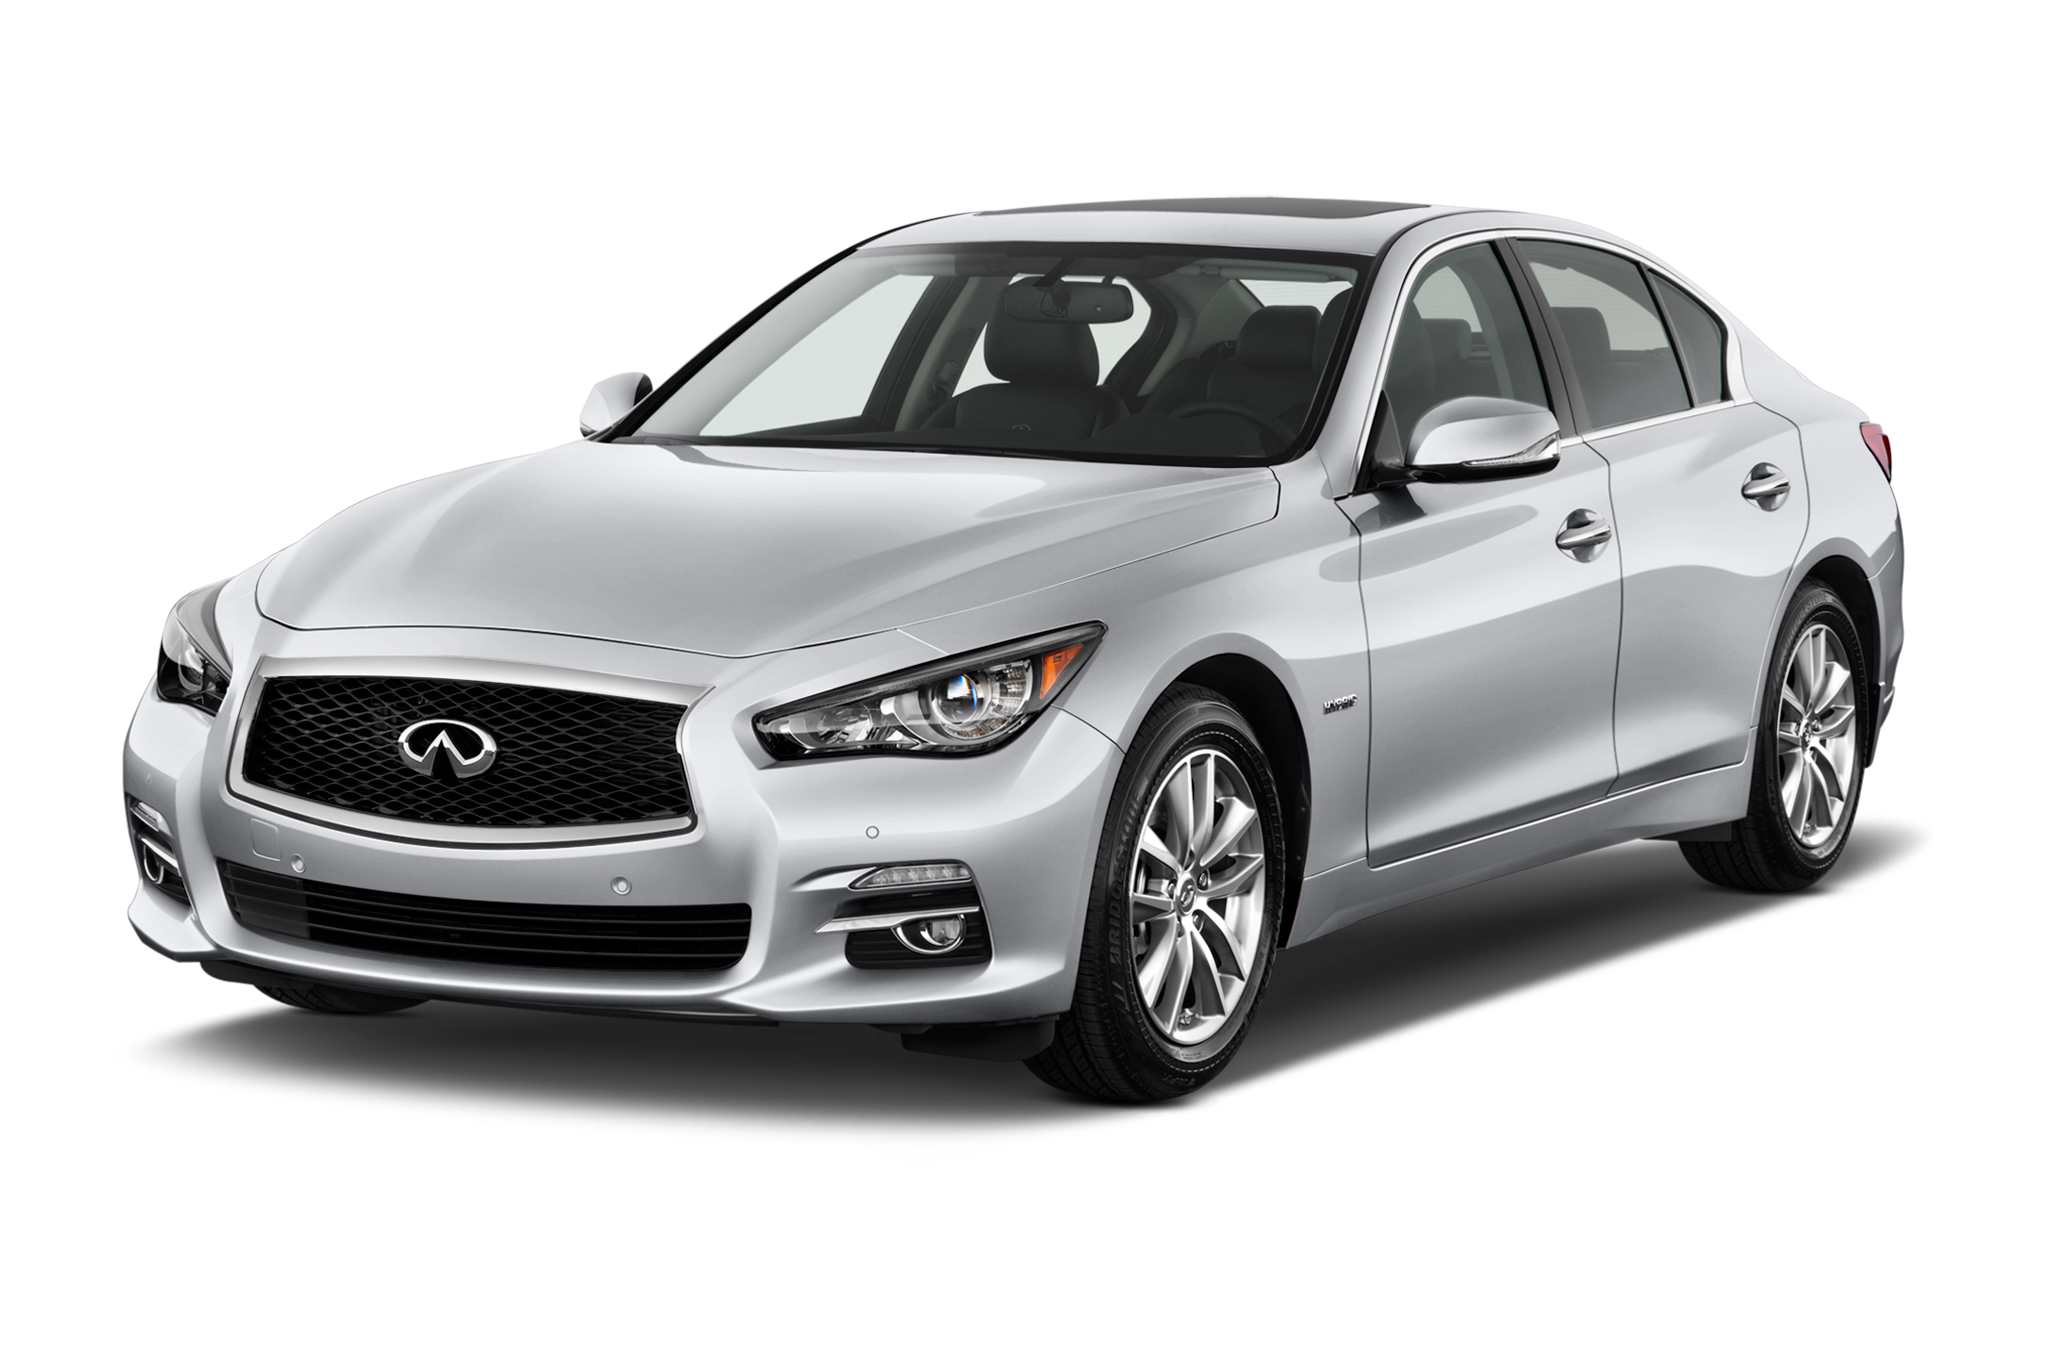 date infinity to auto specs info world car and pertaining infiniti update price release